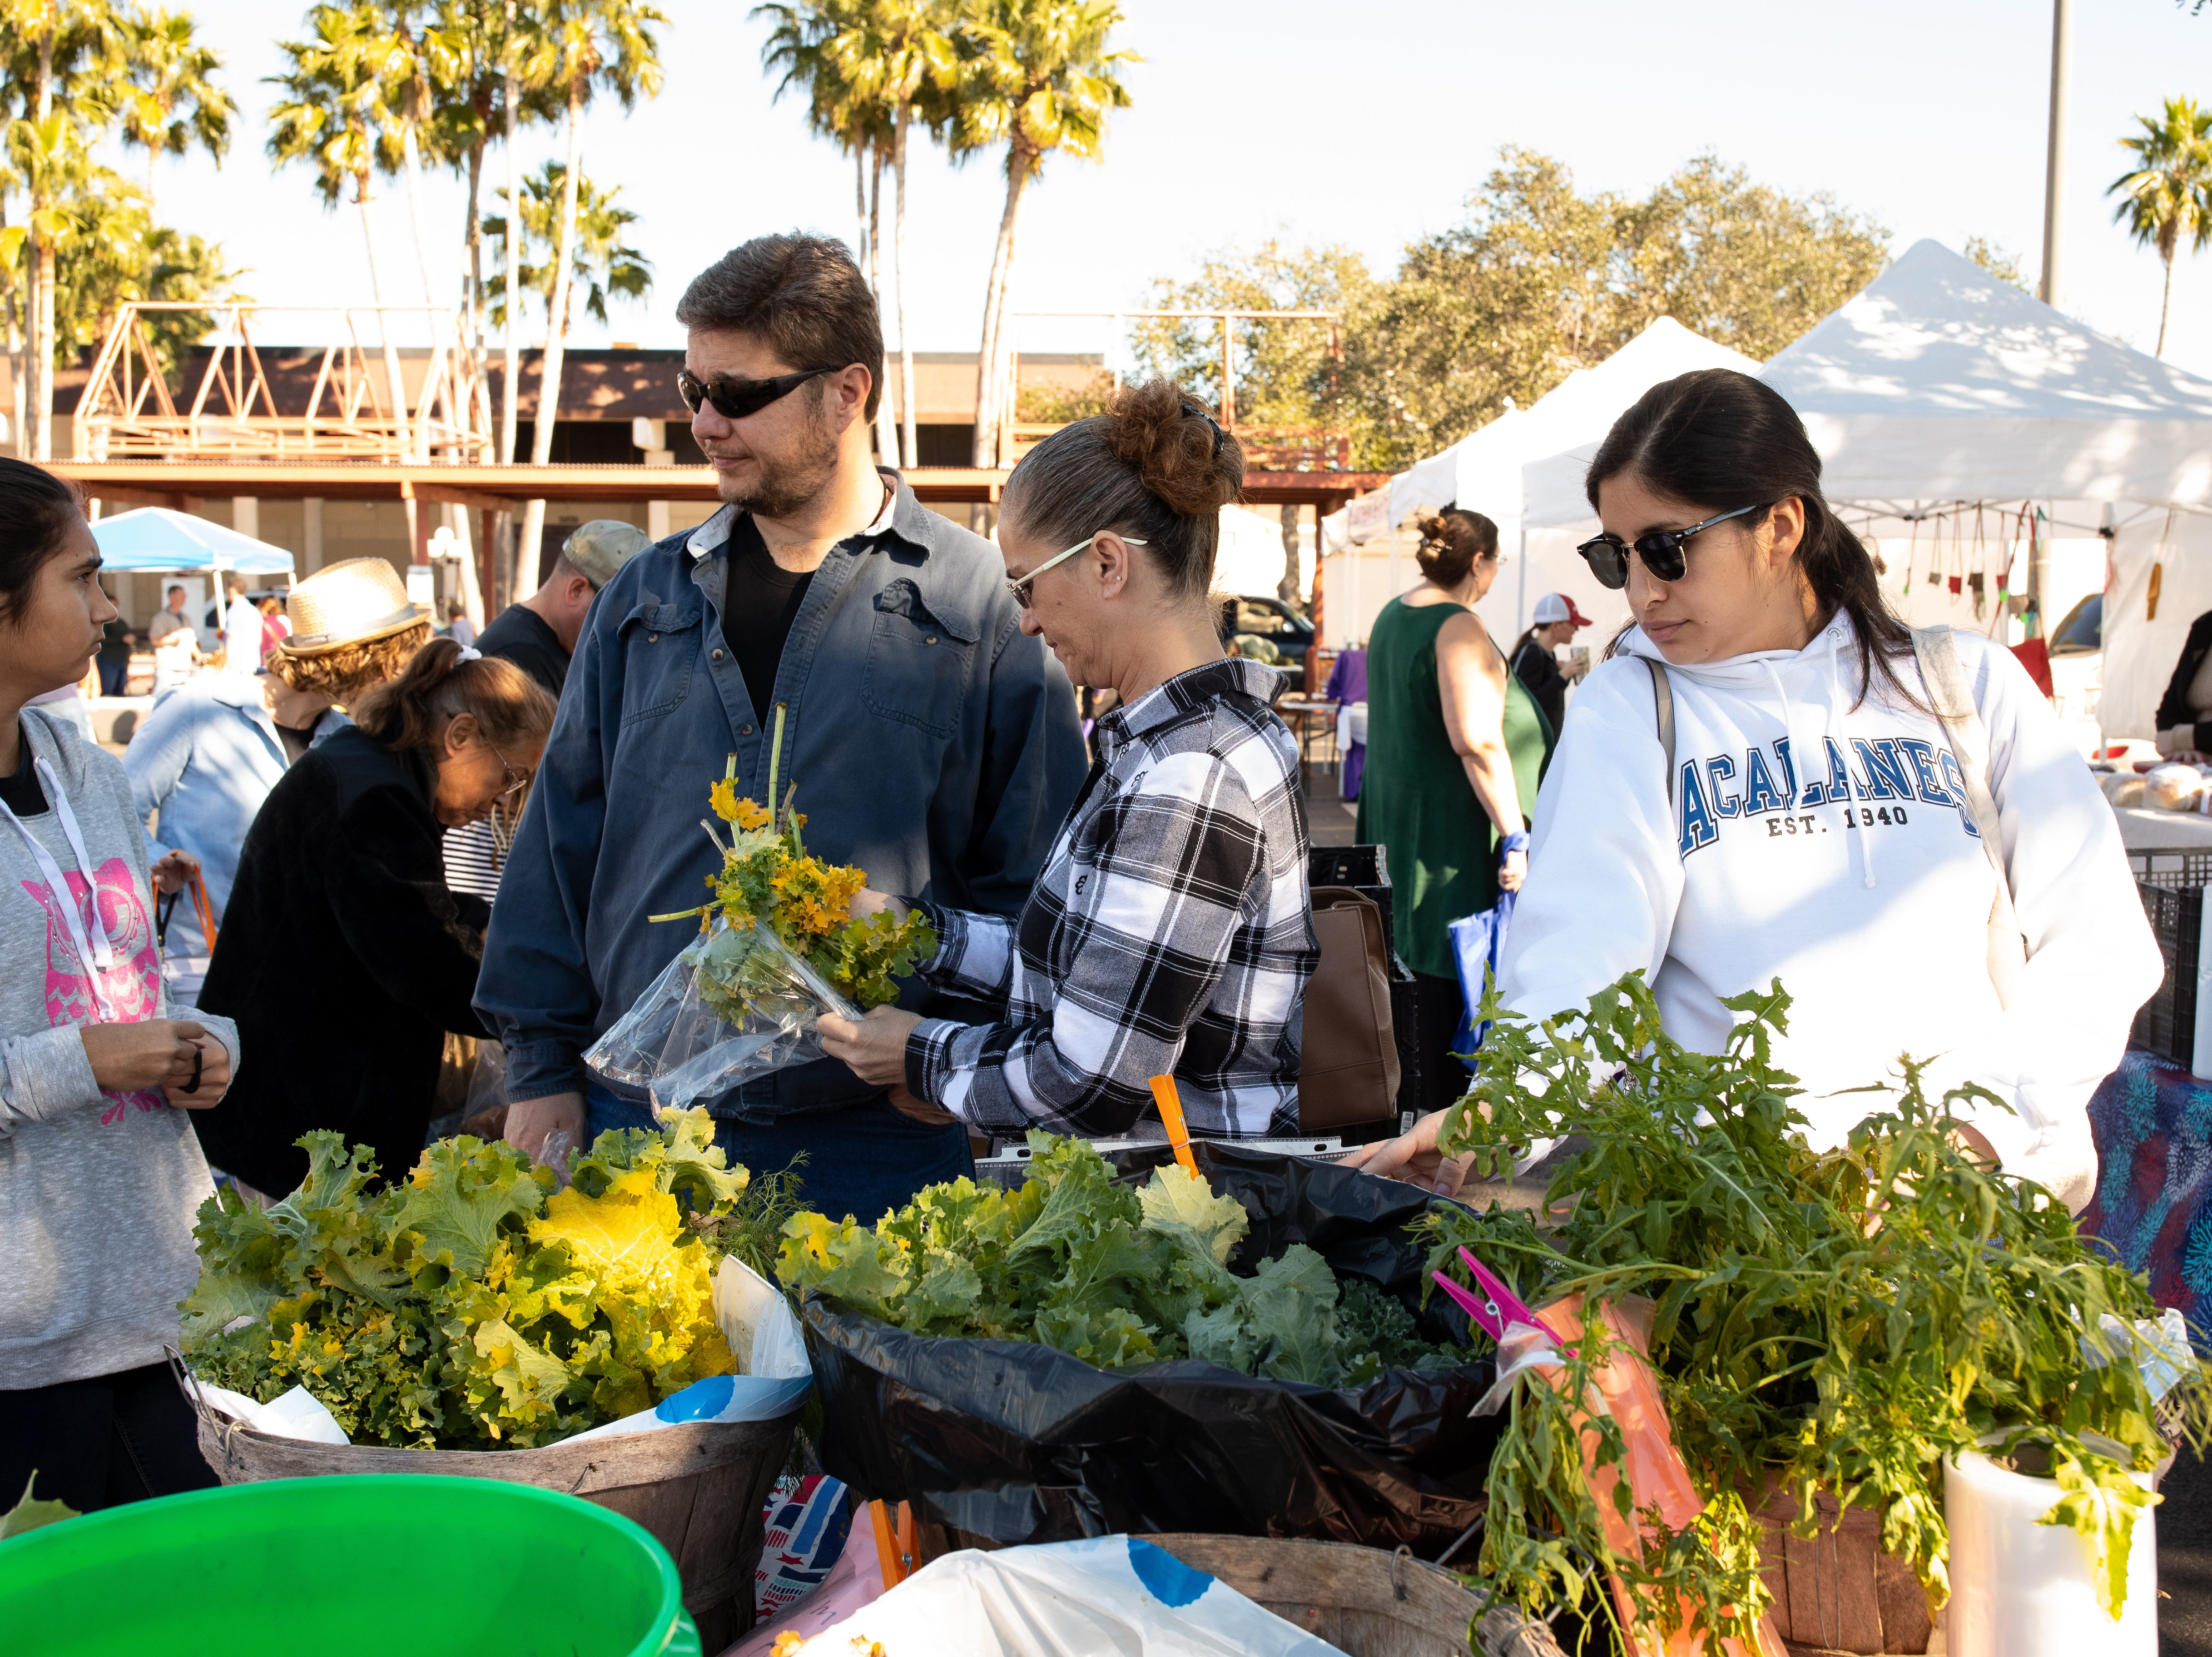 People look thought fruit and produce at the Corpus Christi Southside Farmers' Market located at 5800 Everhart Road on Saturday, Jan. 5, 2019.